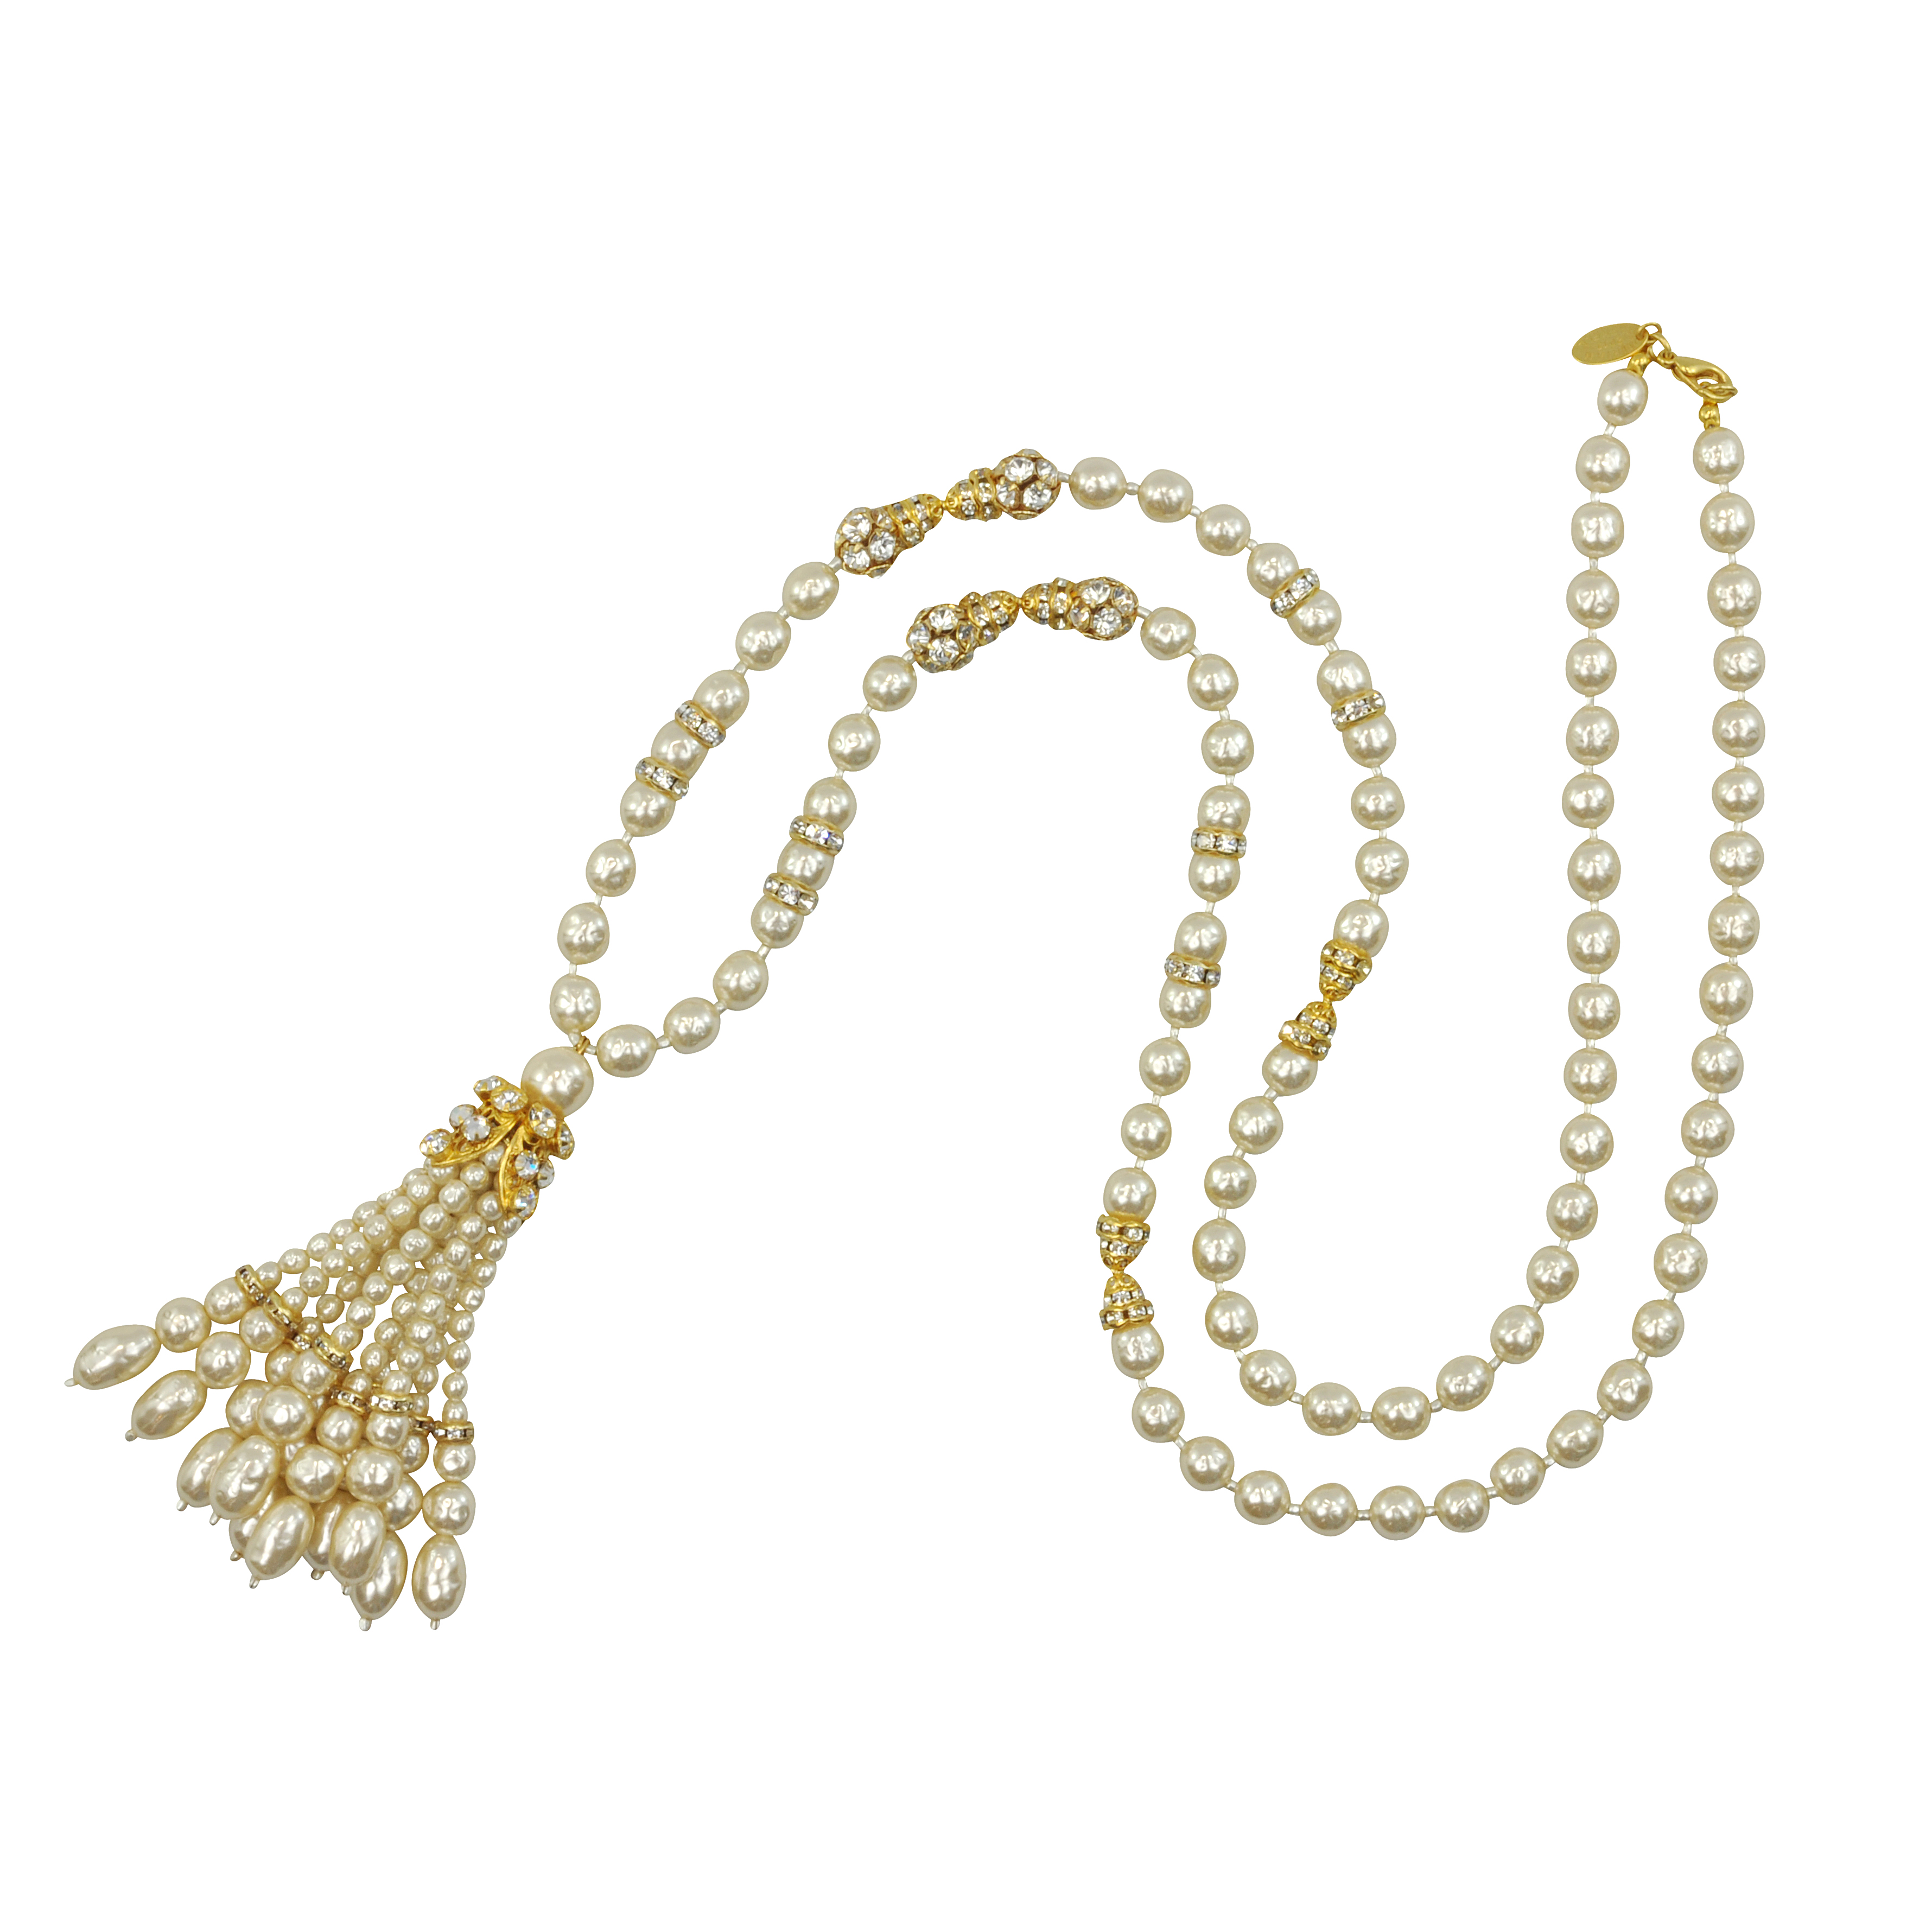 Miriam Haskell Pearl and Chrystal Tassel Necklace - Sophie's Closet